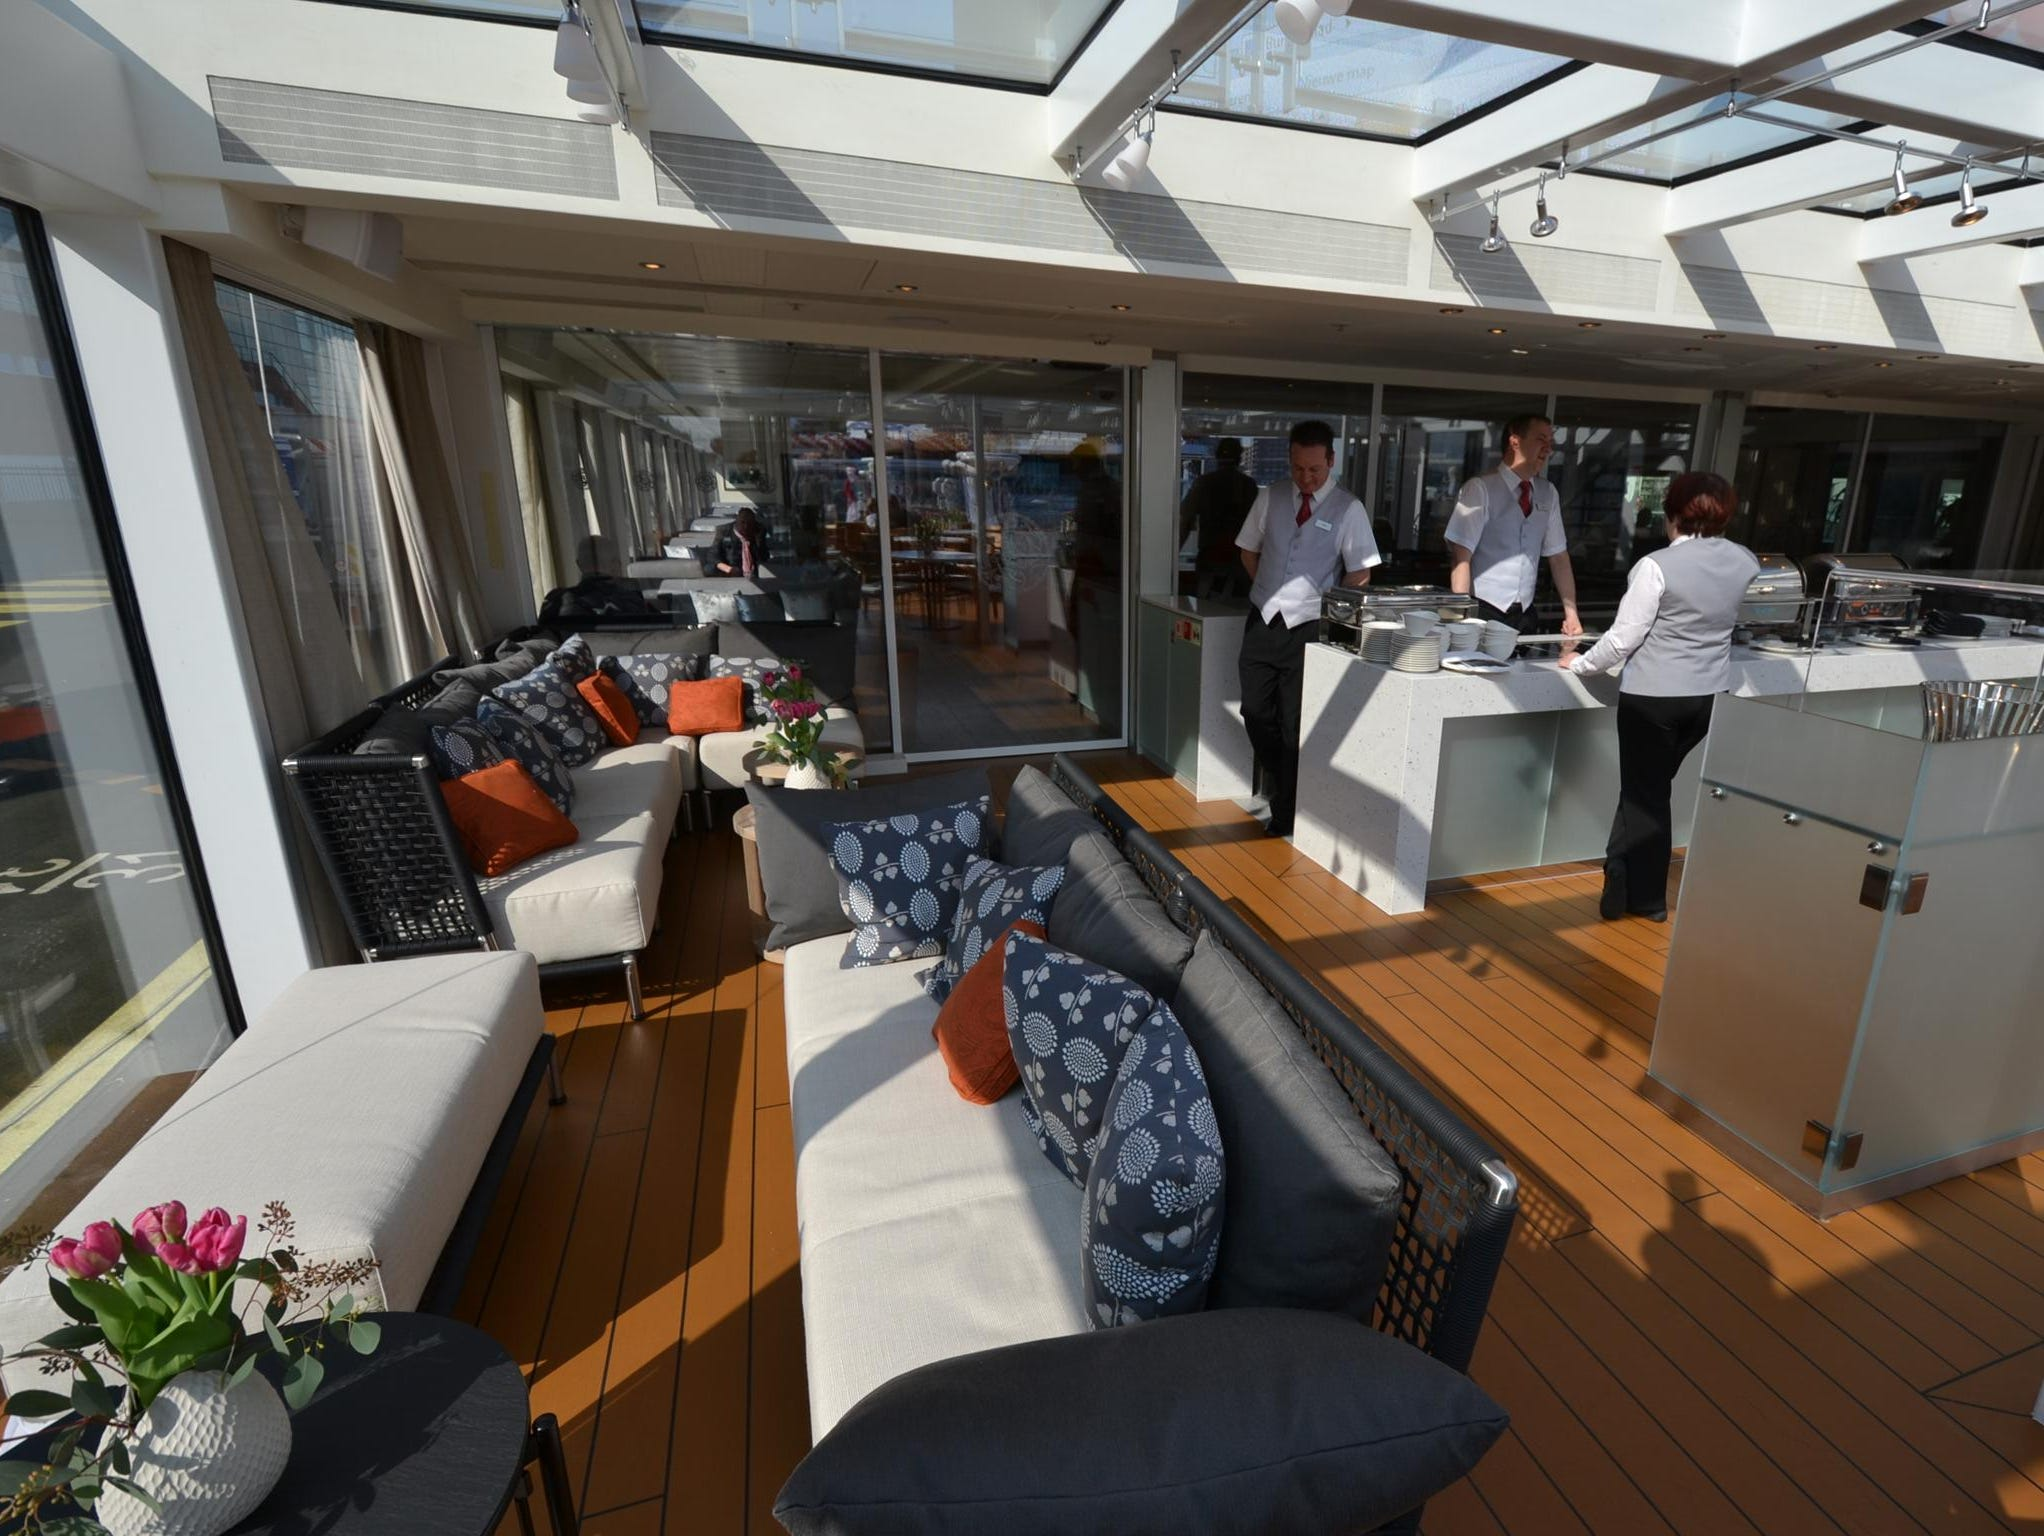 Made possible by a new, patented bow design, the wide-open Aquavit Terrace is home to a buffet area where light lunches can be served to passengers as the ship sails.